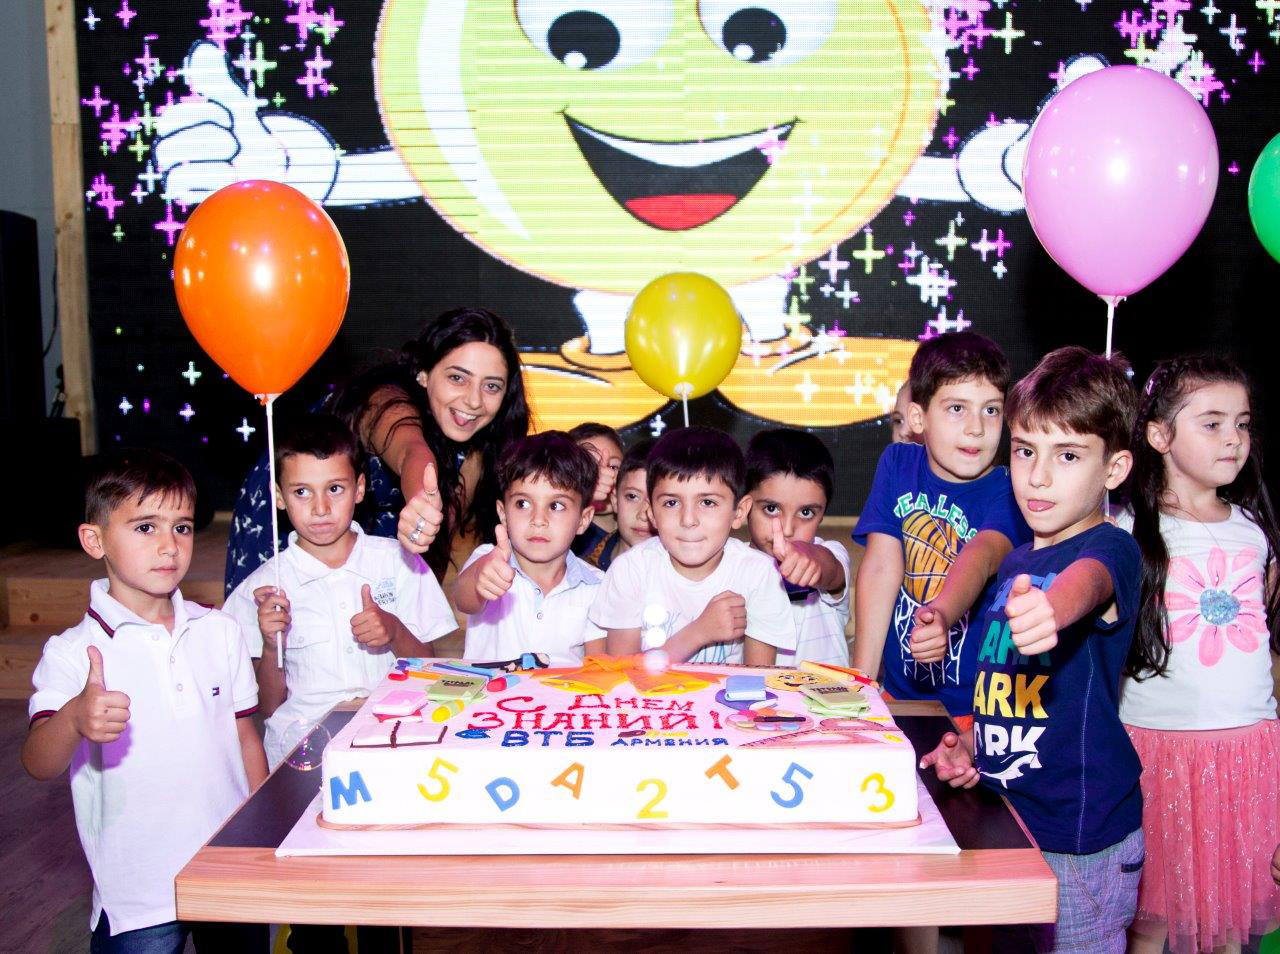 VTB Bank (Armenia) organized festive events for staff children